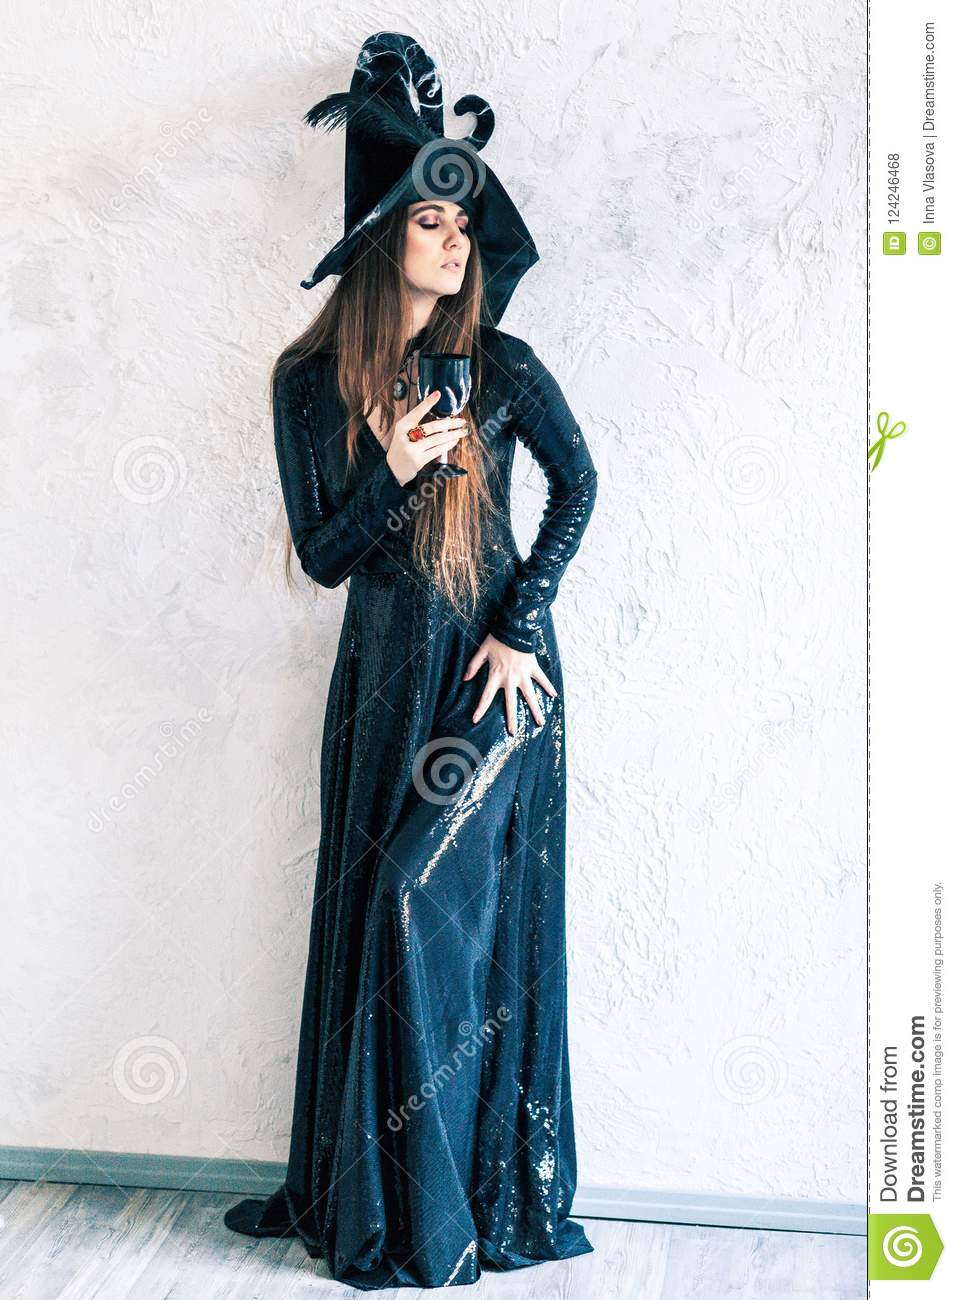 halloween witch in black dress stock photo - image of antique